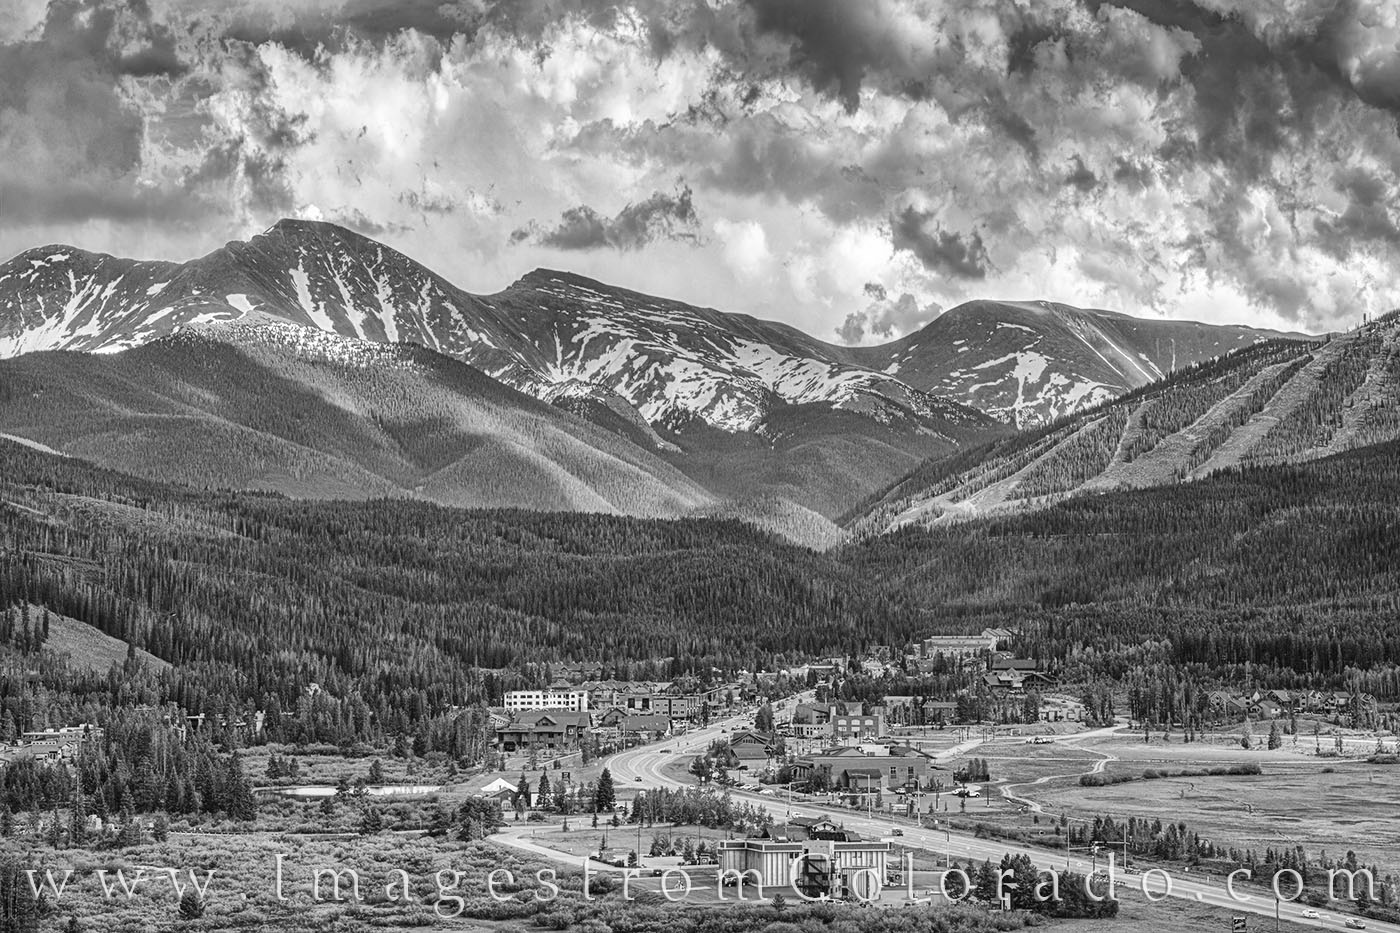 winter park, black and white, parry peak, ski slopes, summer, hwy 40, berthoud pass, 13ers, summer, clouds, storm clouds, photo